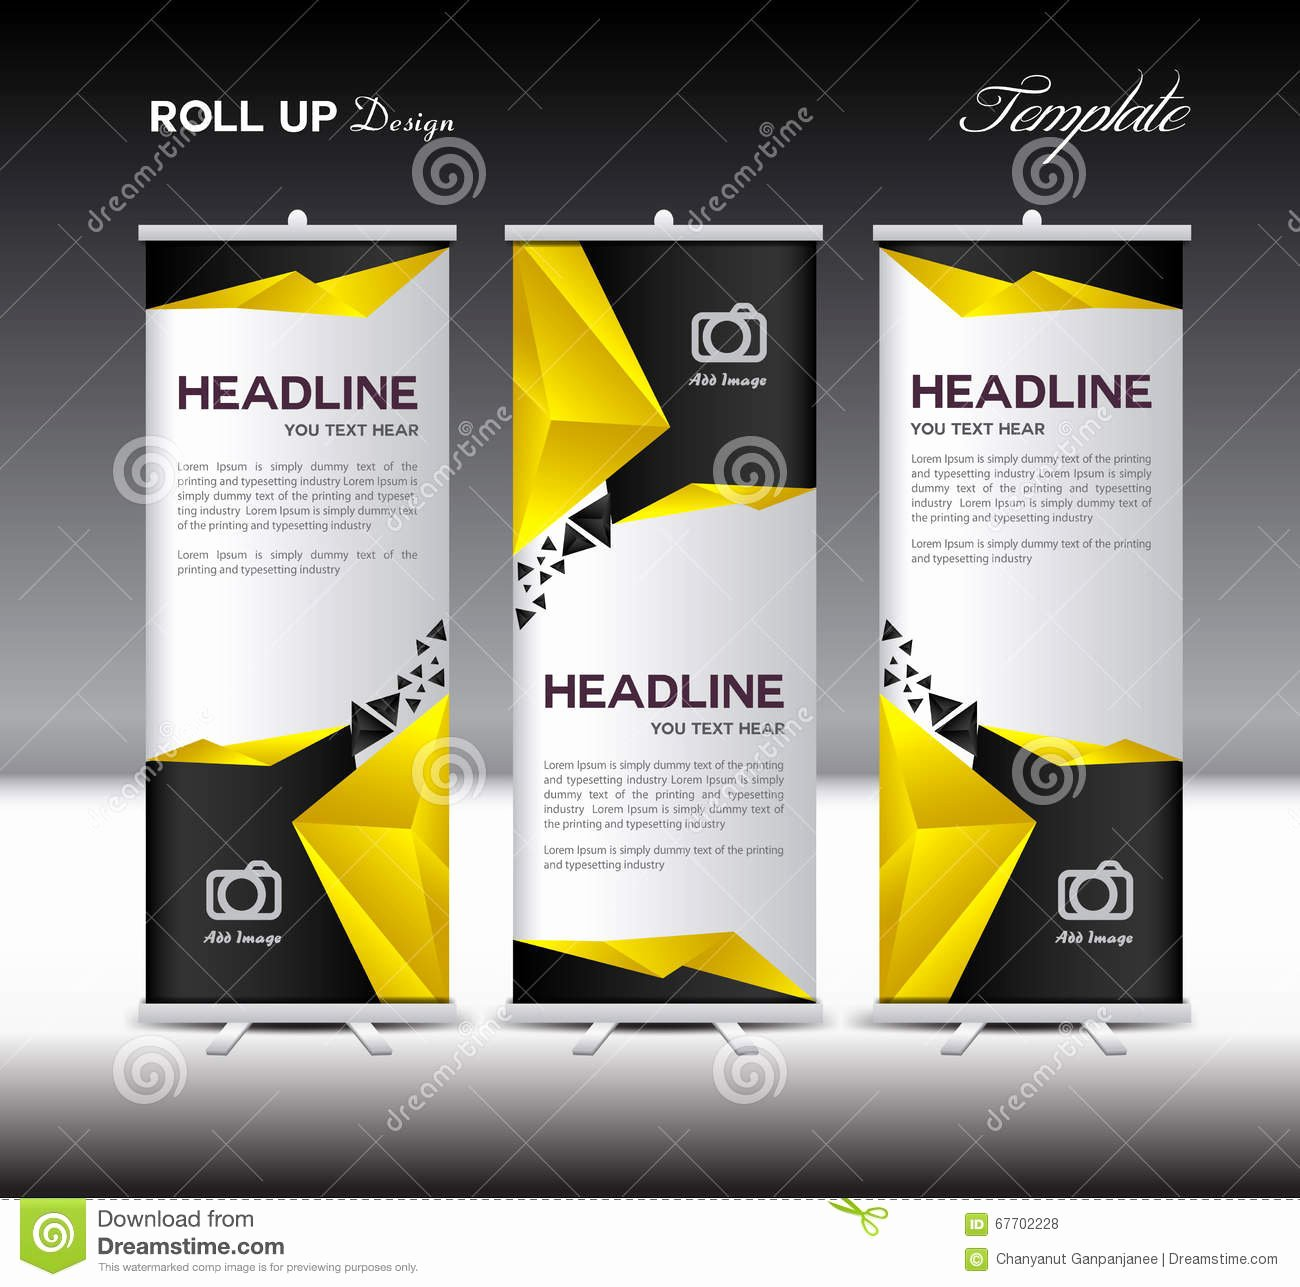 Roll Up Banner Template Unique Yellow and Black Roll Up Banner Template Vector